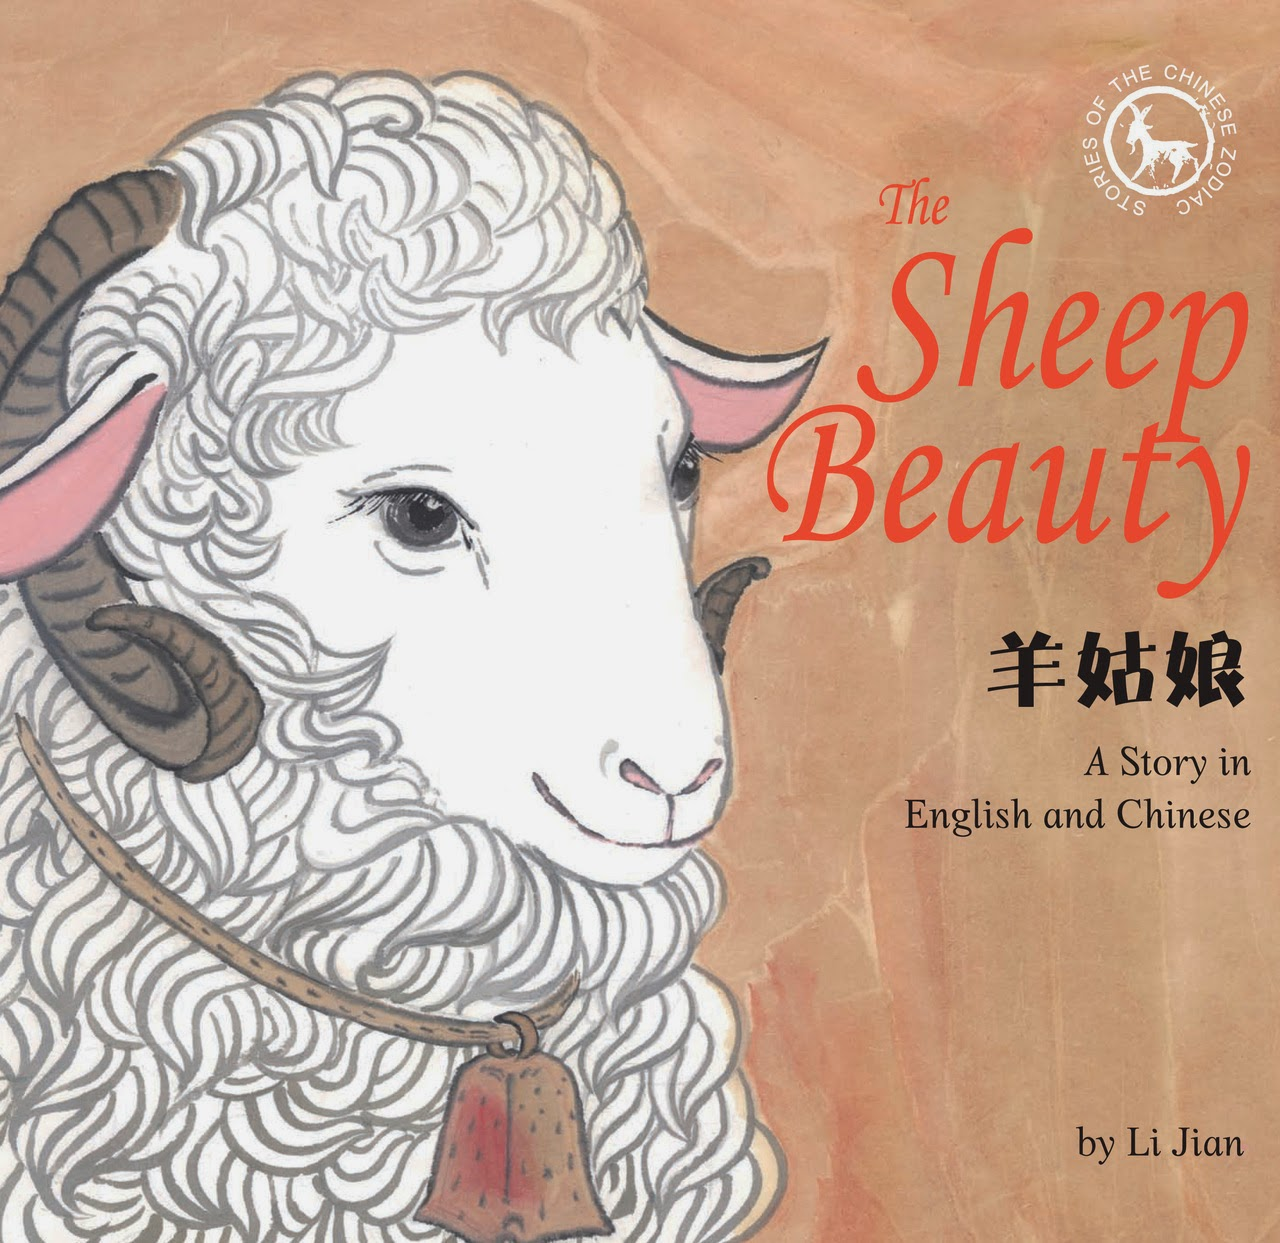 http://www.tuttlepublishing.com/books-by-country/the-sheep-beauty-hardcover-with-jacket